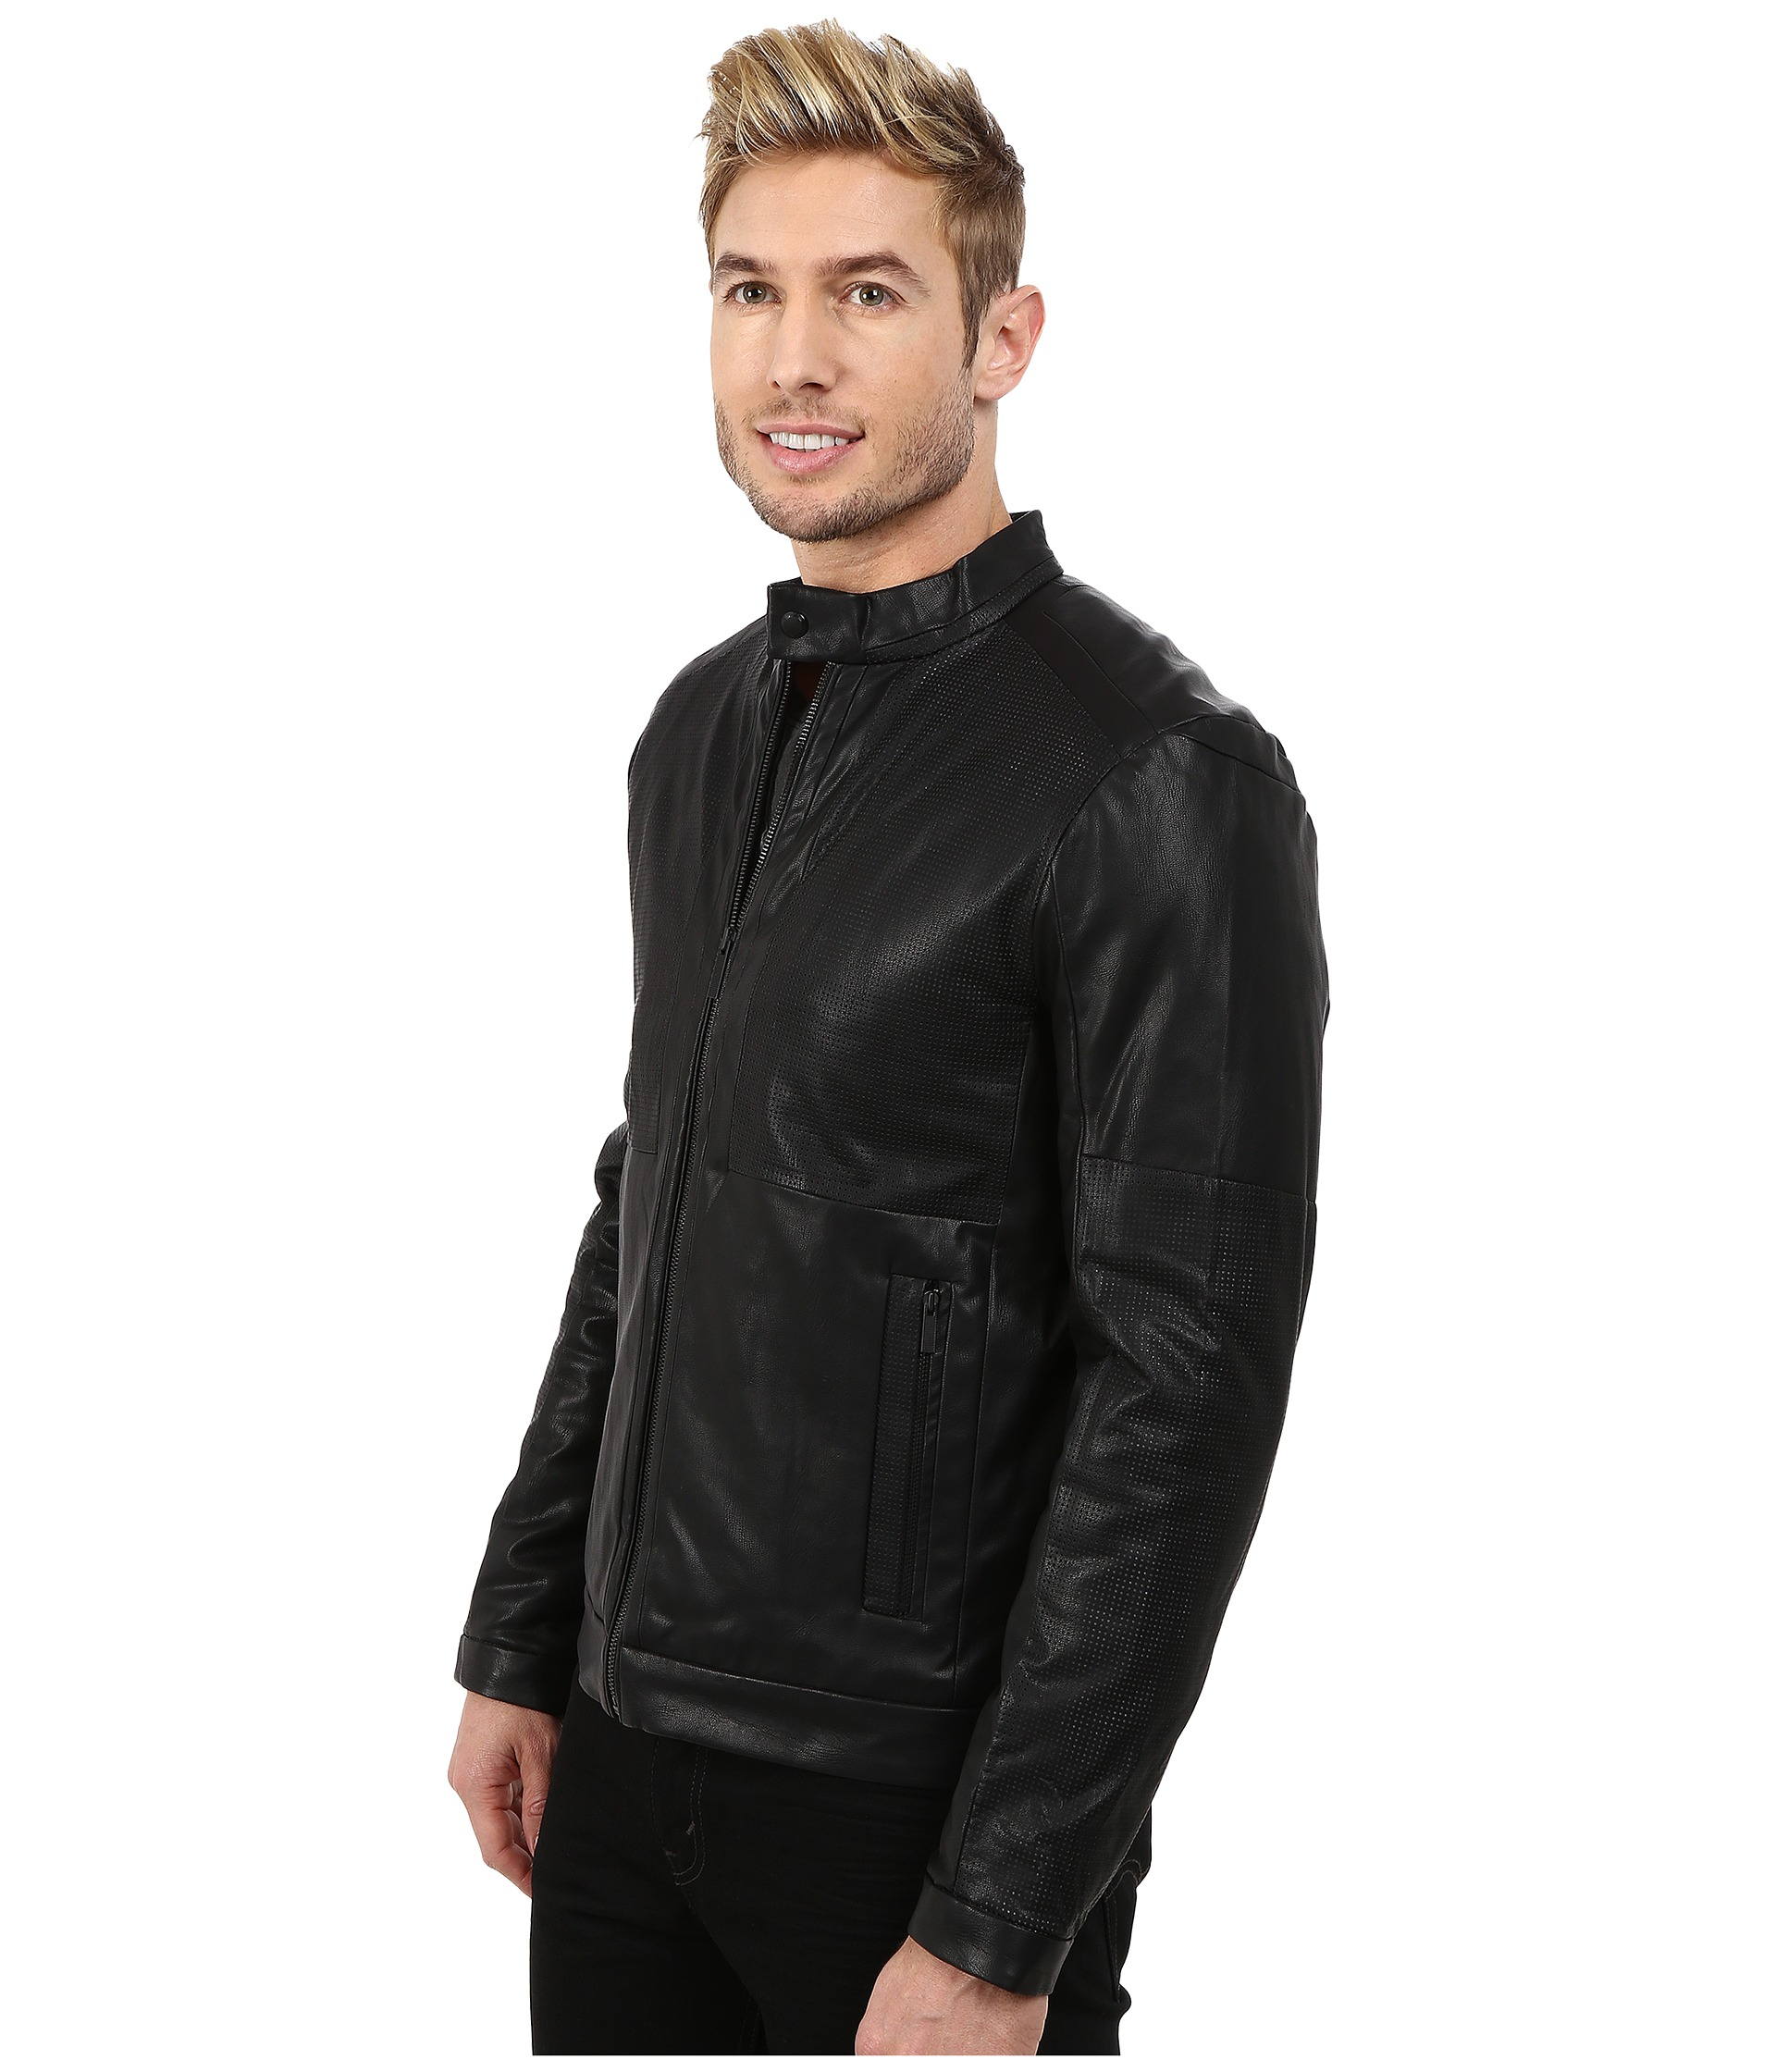 Mens Perforated Faux Leather Jacket Cairoamani Com